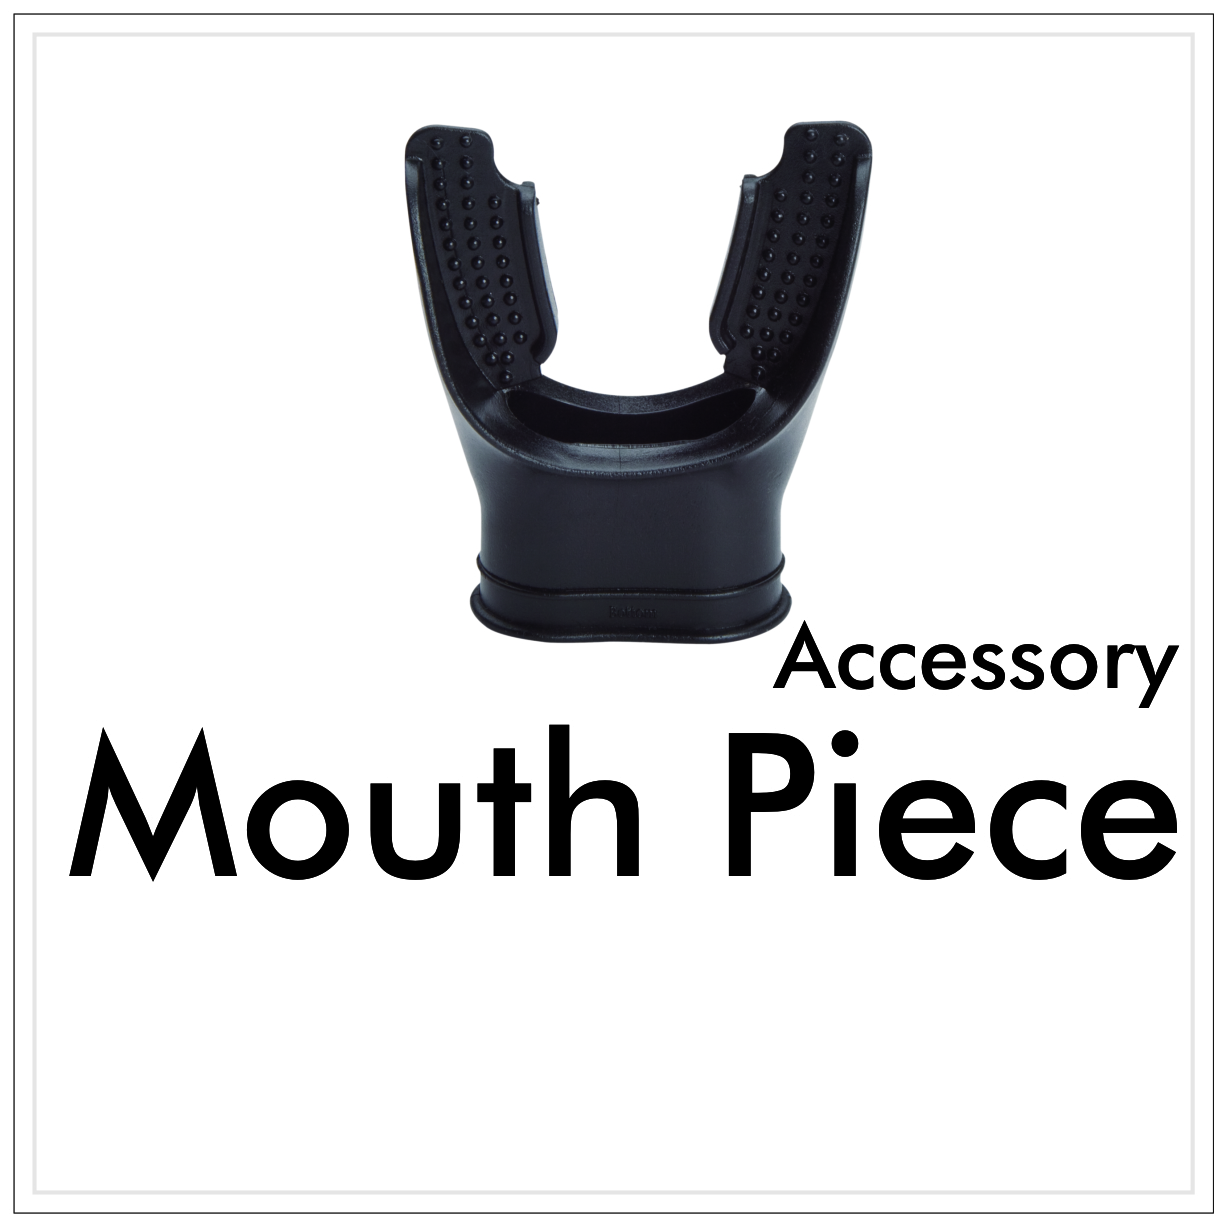 MOUTH PIECE